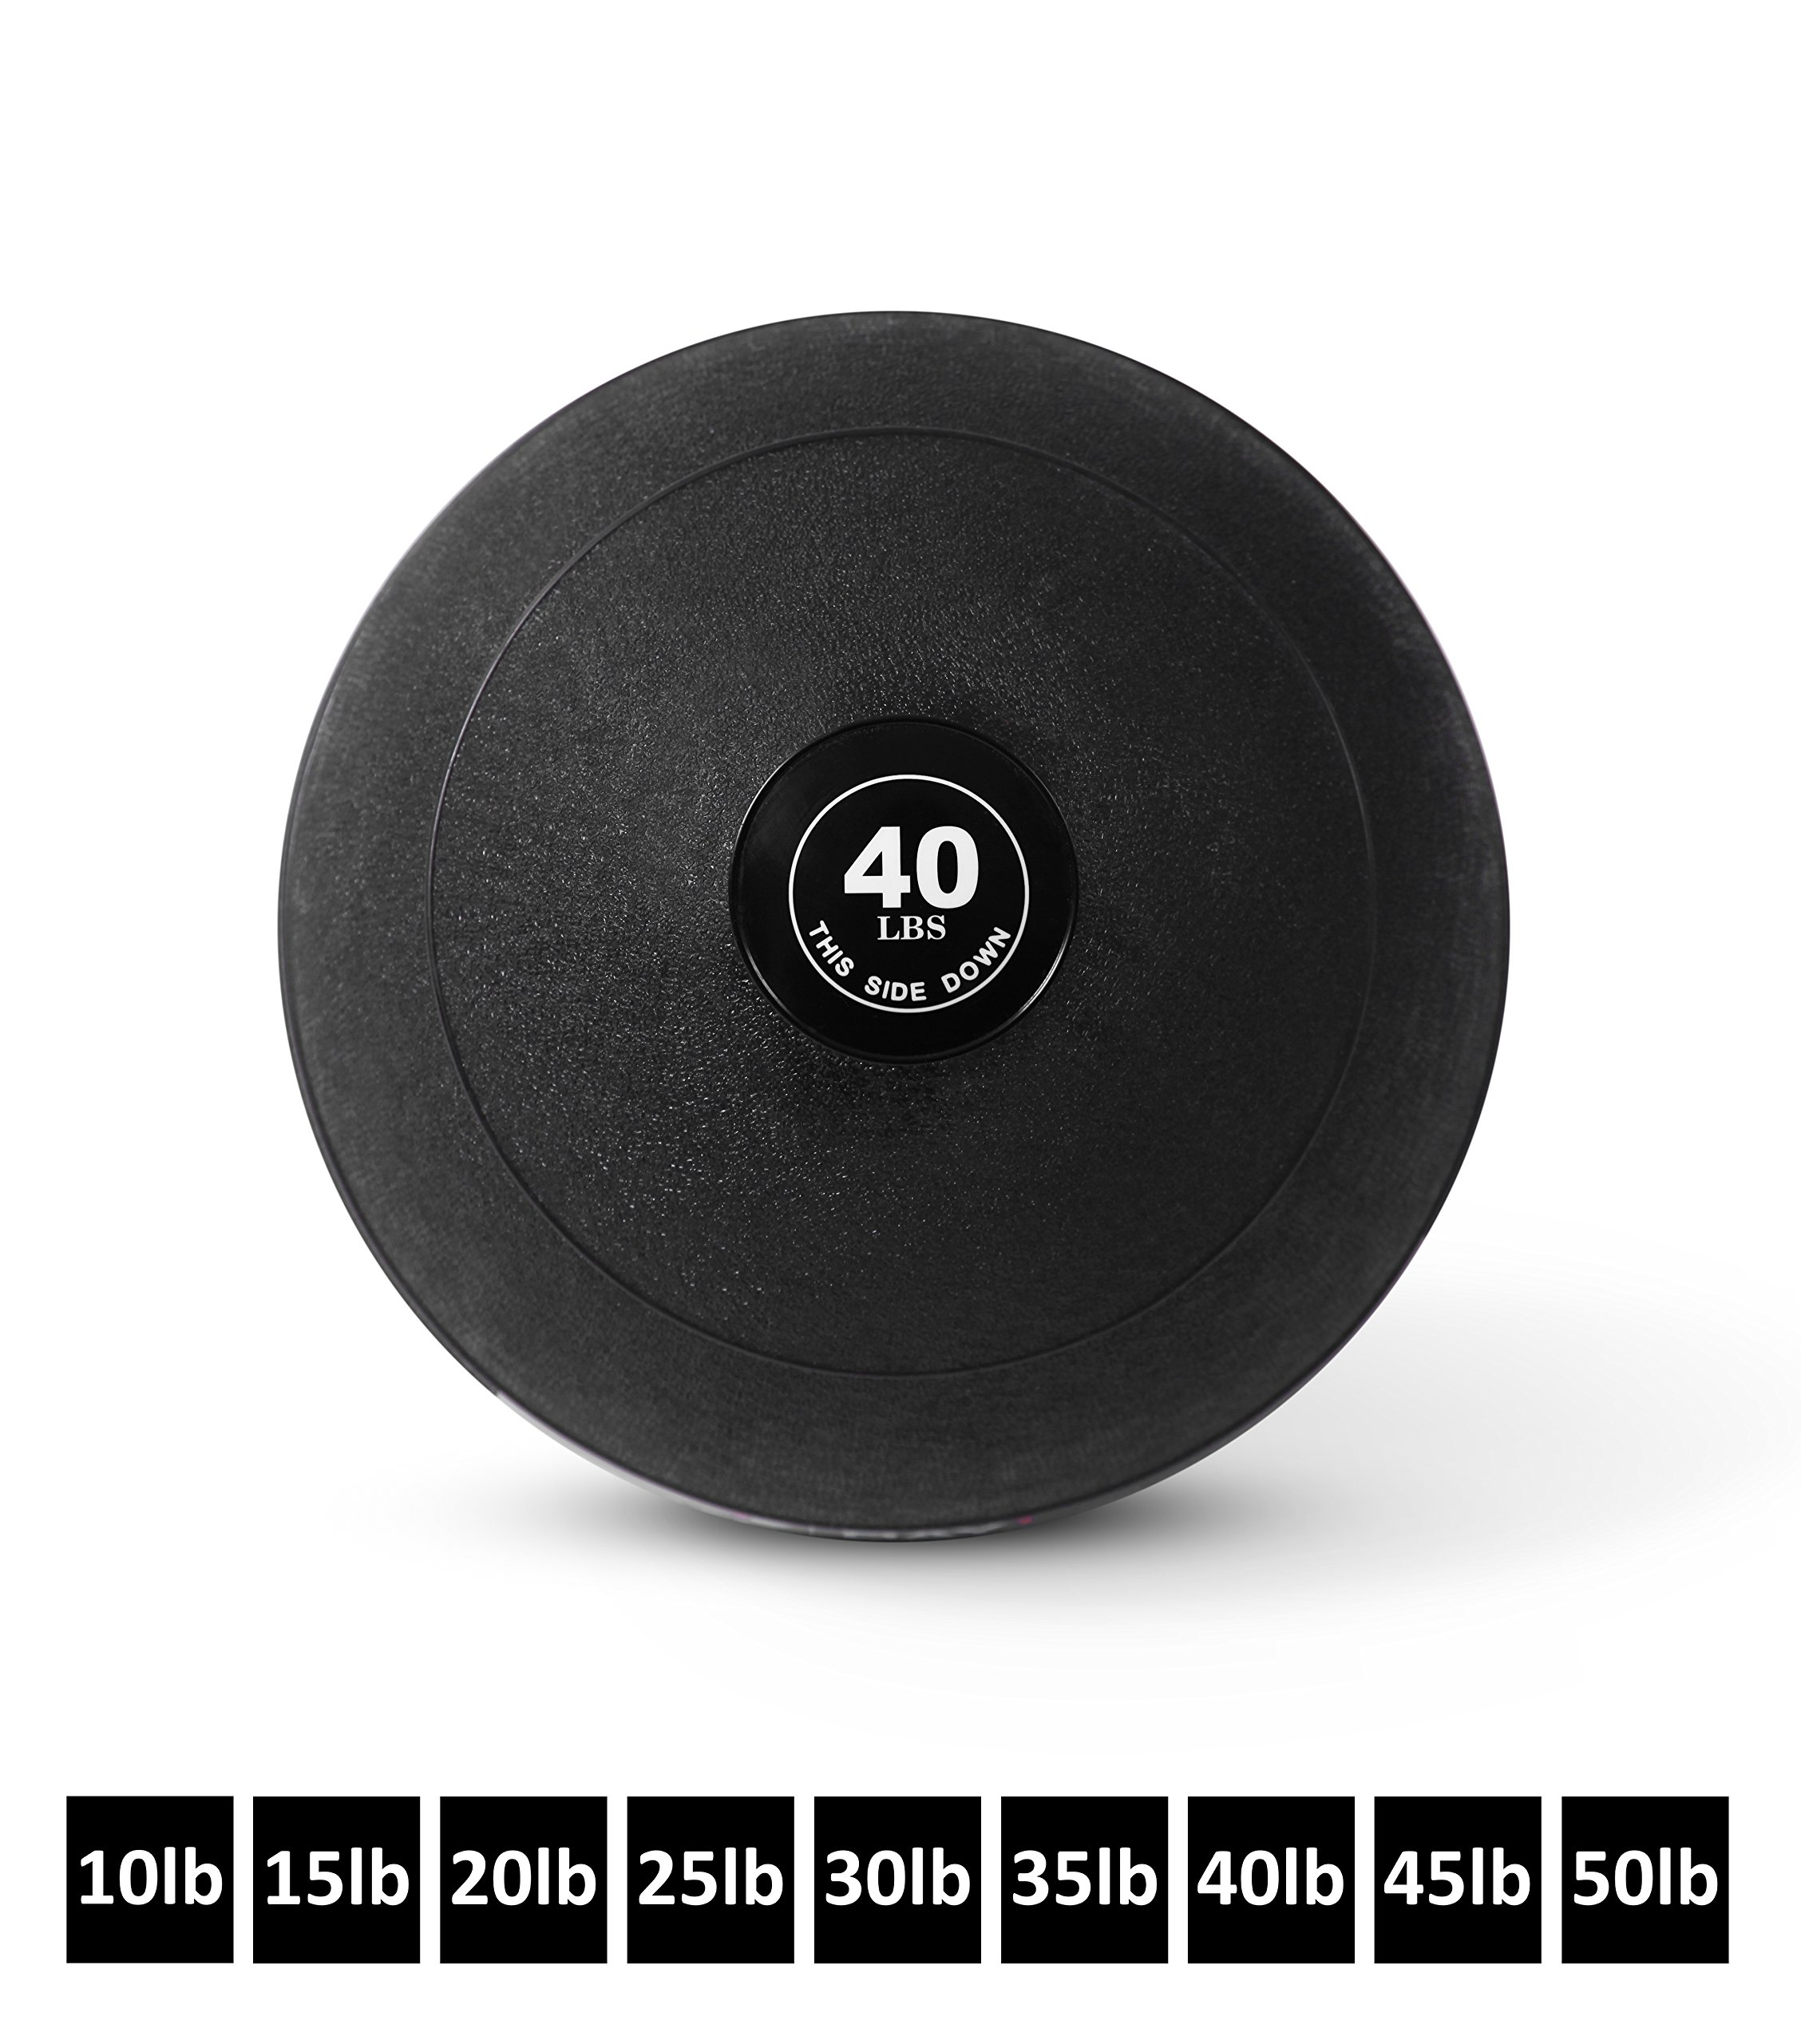 Day 1 Fitness Weighted Slam Ball 40 lbs - No Bounce Medicine Ball - Gym Equipment Accessories for High Intensity Exercise, Functional Strength Training, Cardio, Crossfit